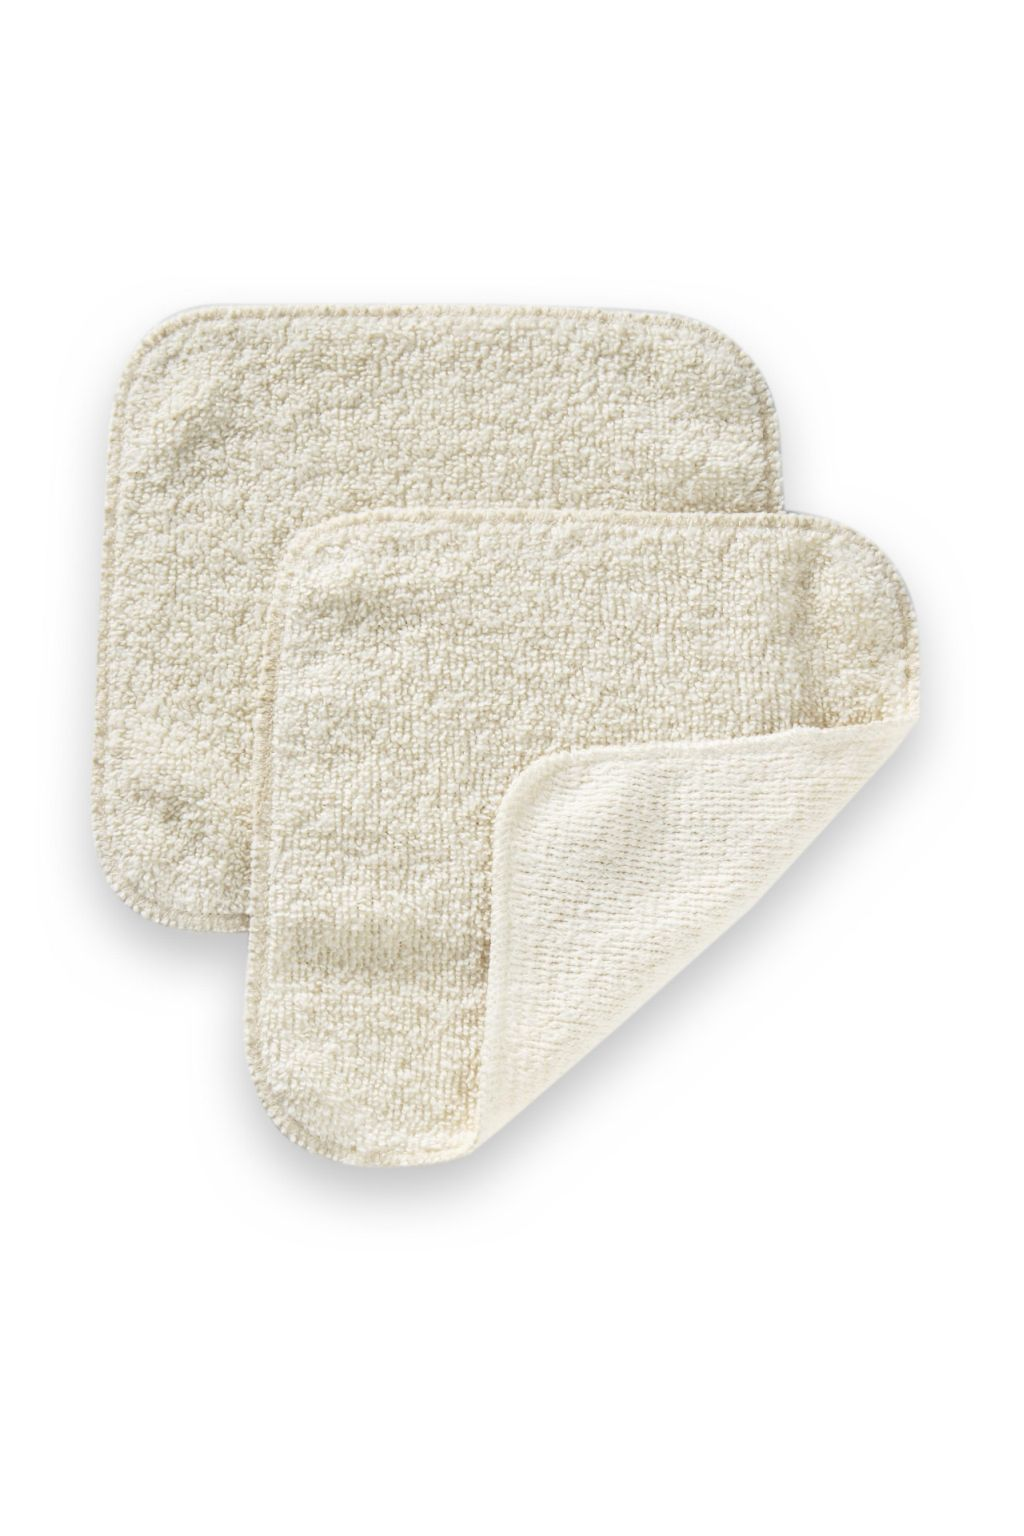 Kissa's  Awesome Knit Terry Wipes,